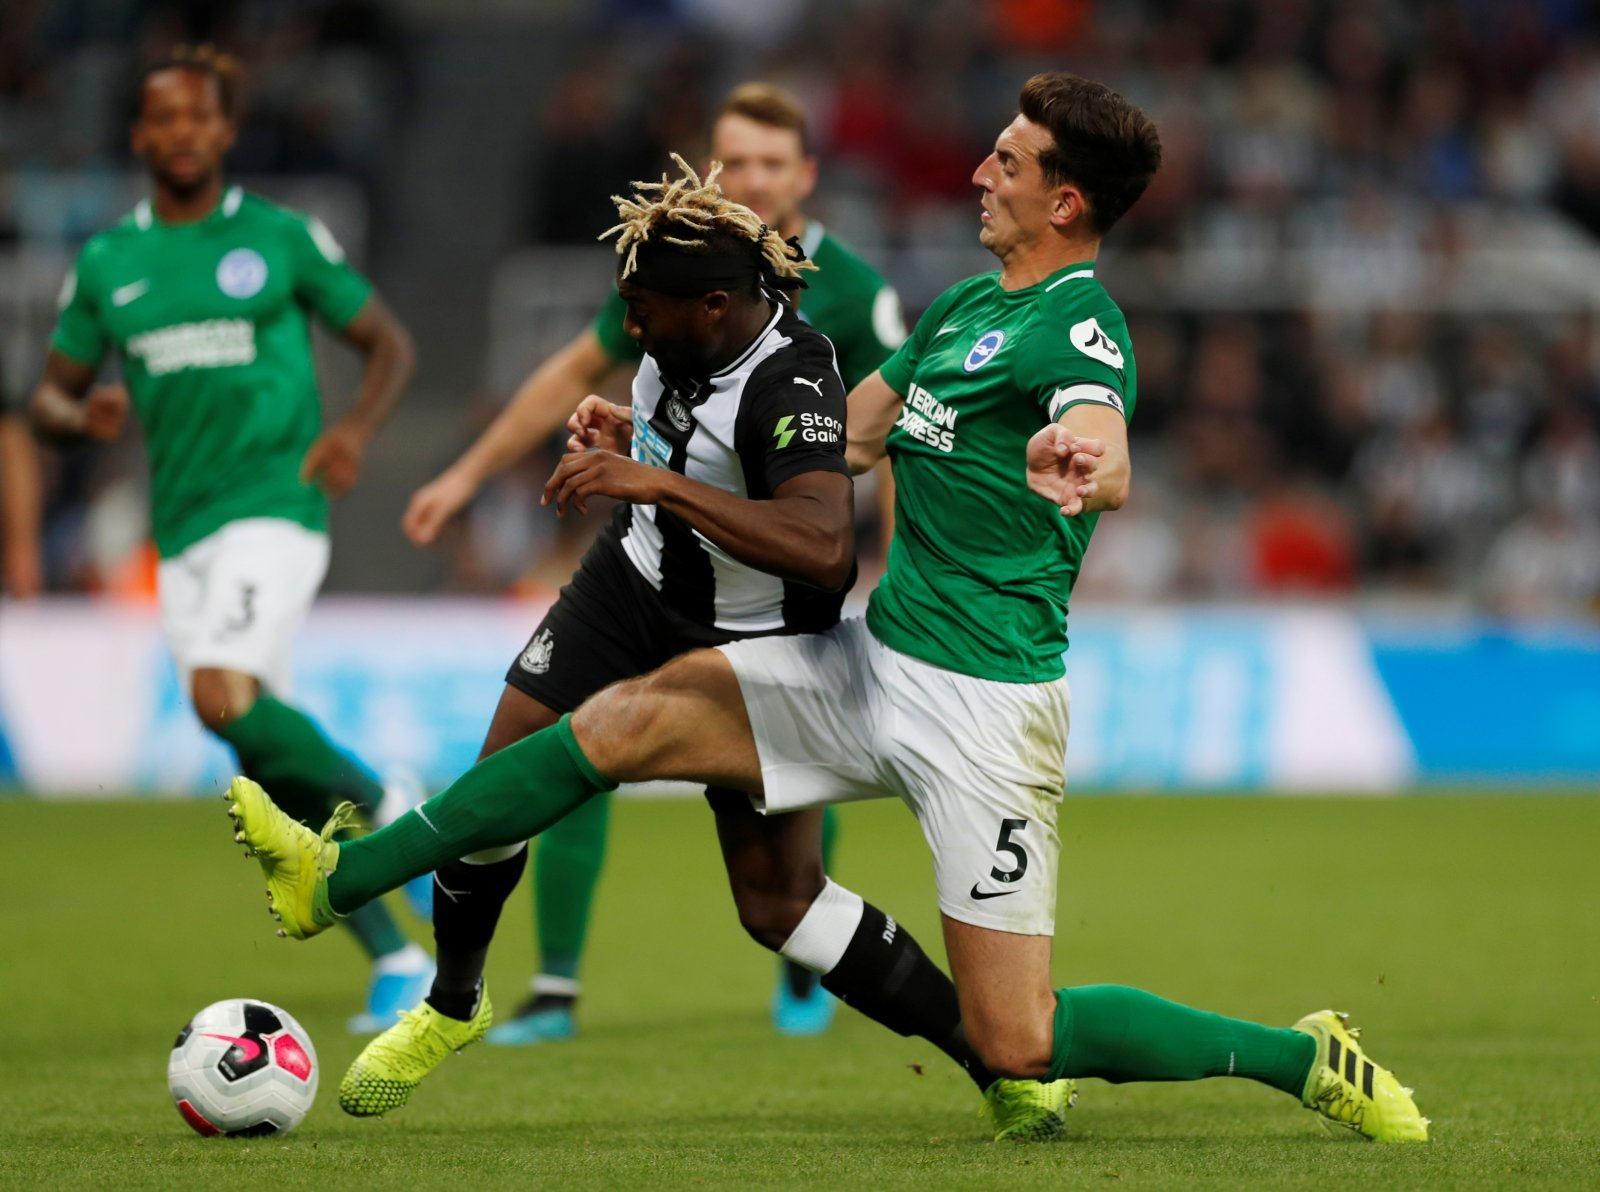 Newcastle United: Fans hail Allan Saint-Maximin after brilliant performance